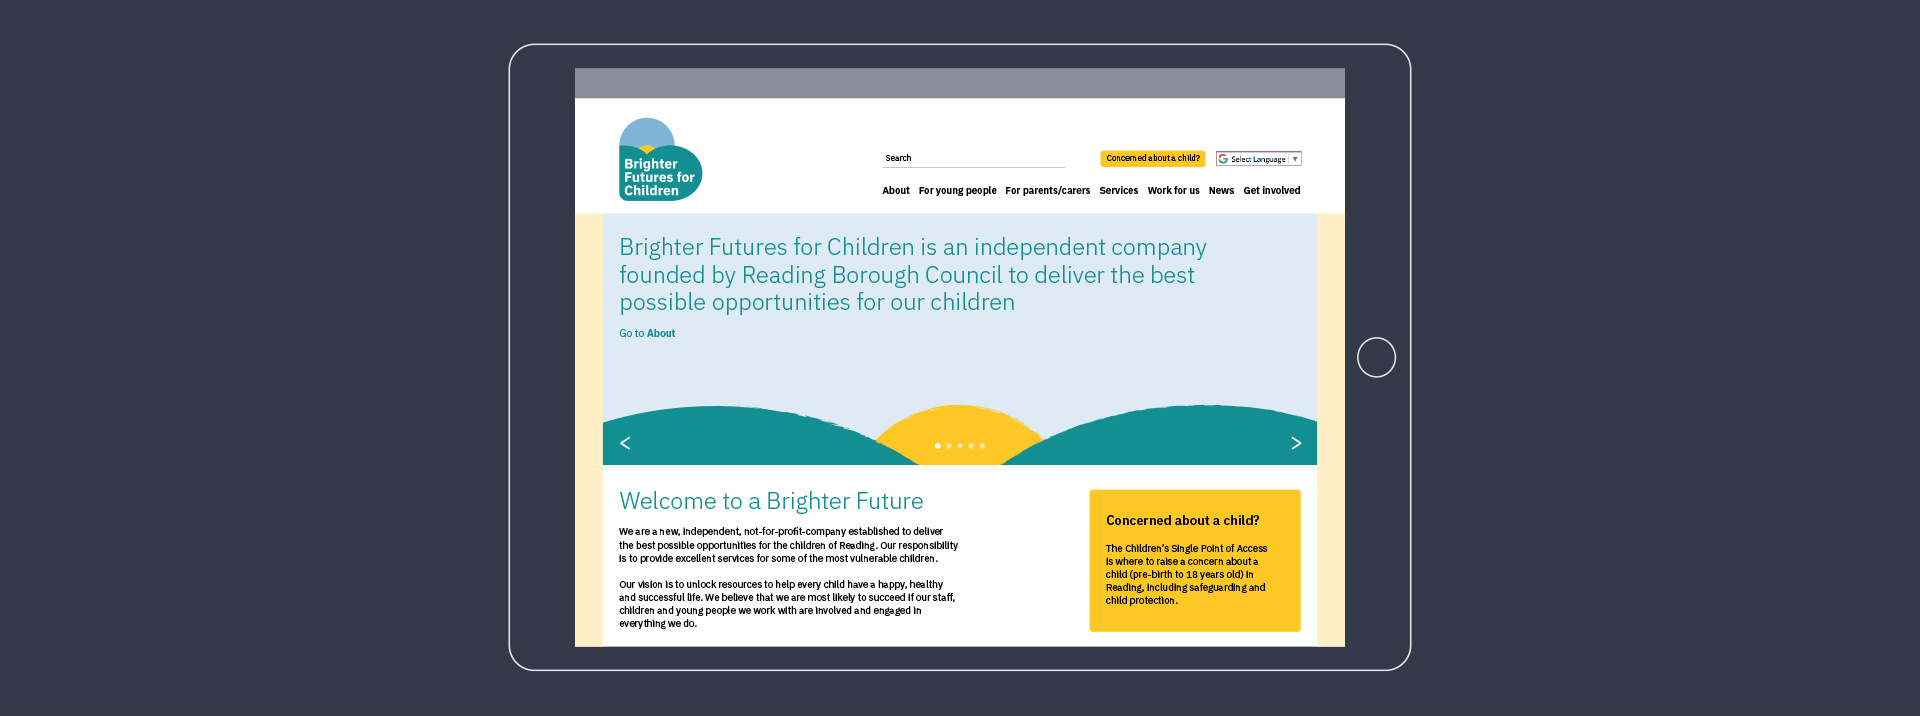 Brighter Futures website design